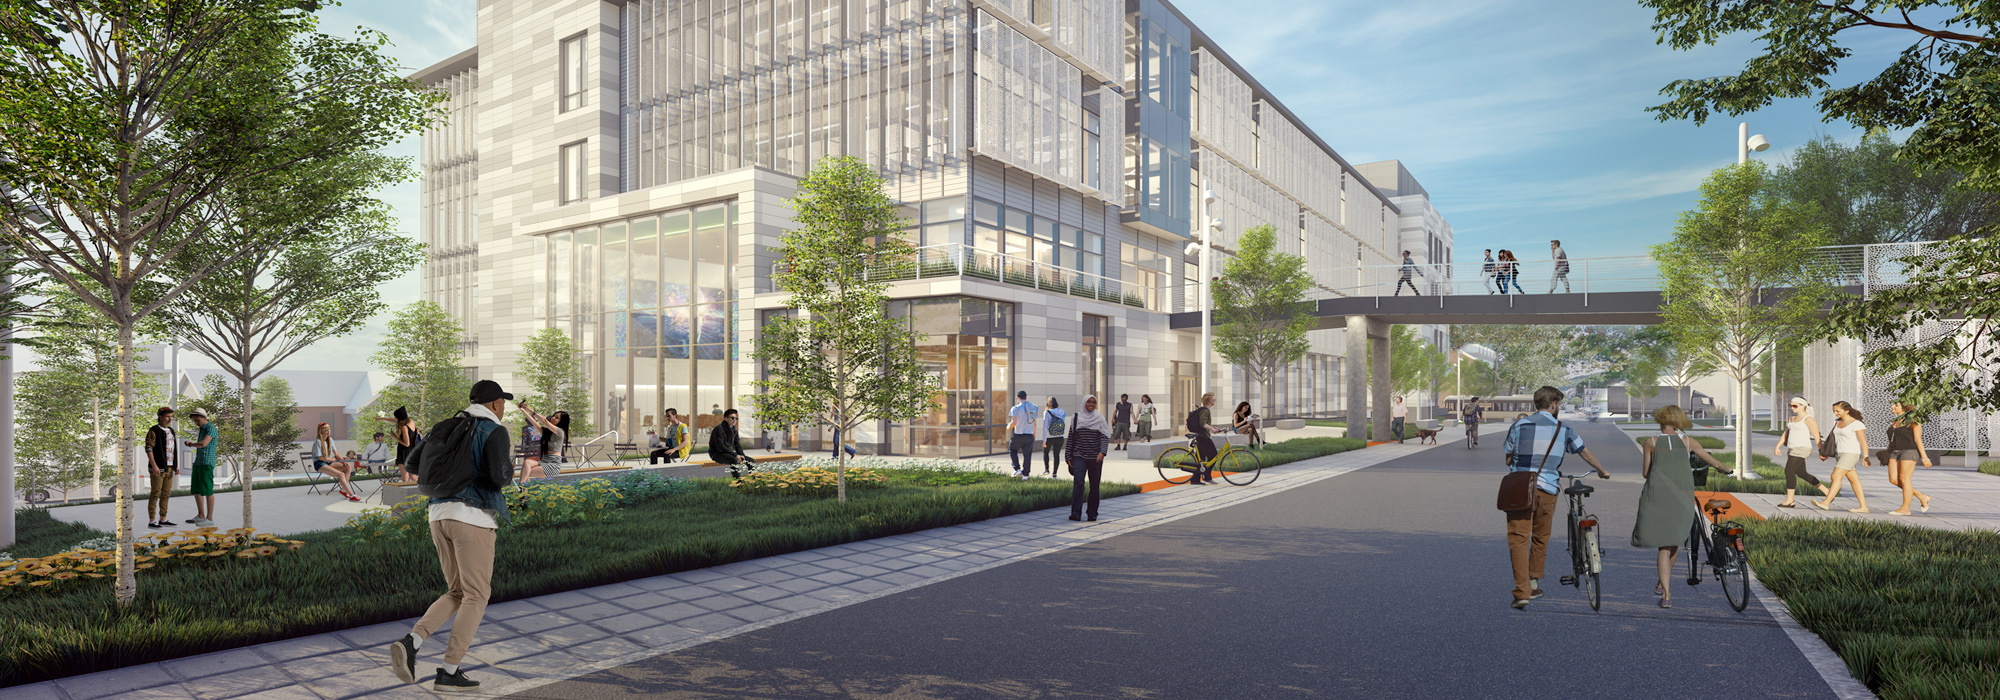 illustrated architectural rendering of the proposed Health, Science & Technology building on Lehigh University's campus